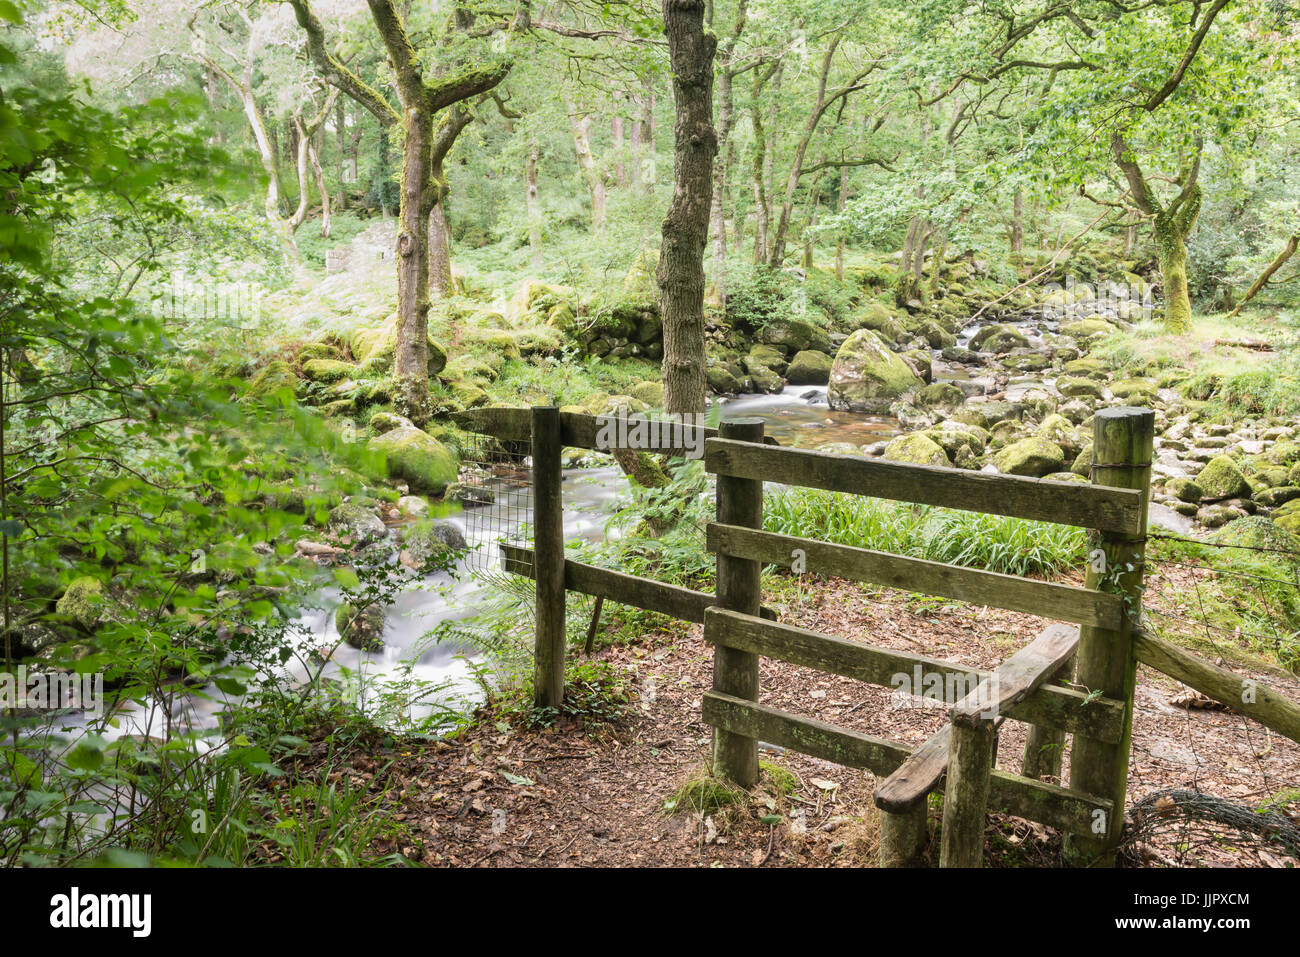 Stile by the river - Stock Image